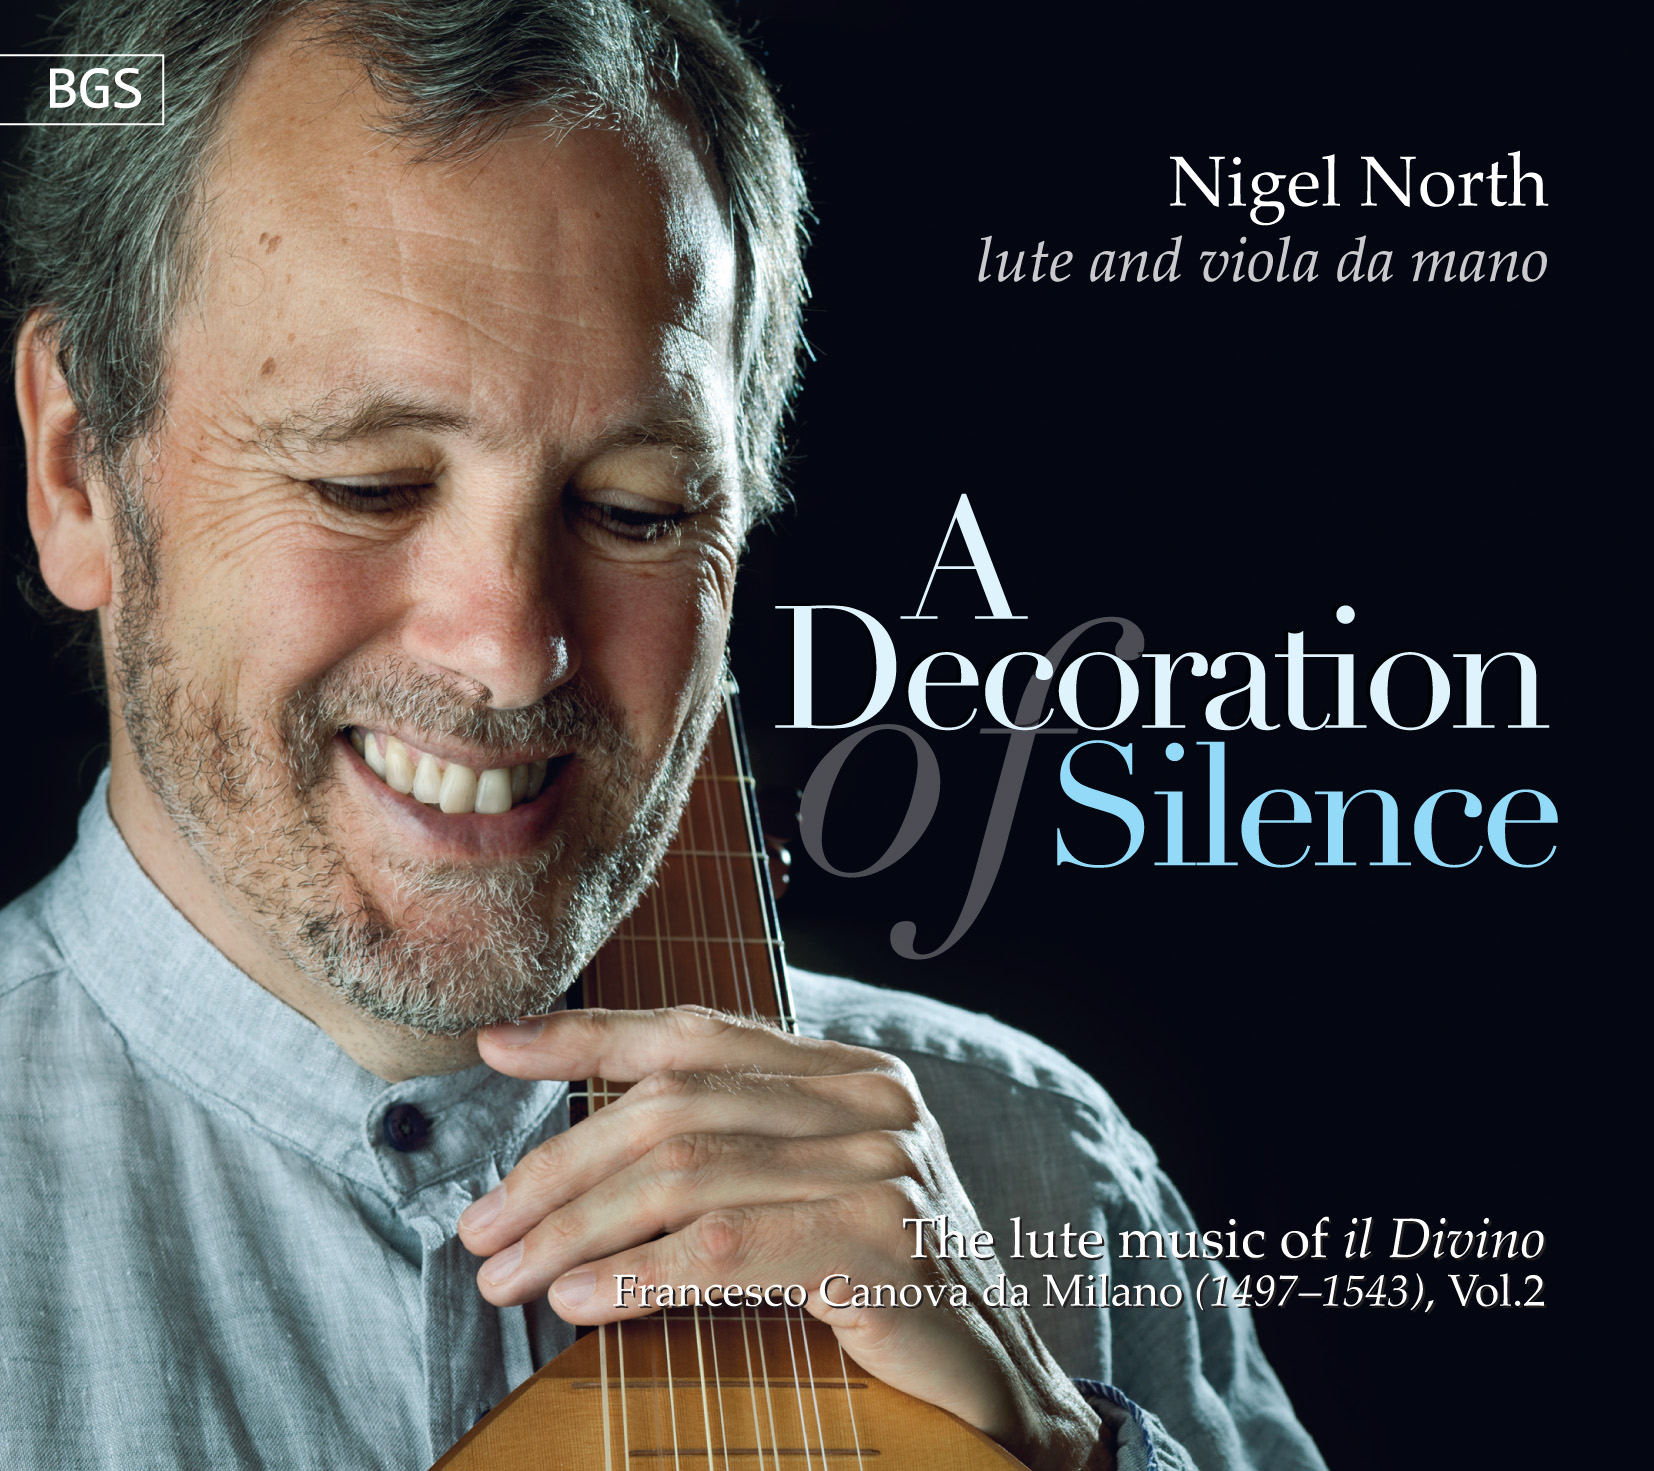 nigel-north a decoration of silience cover